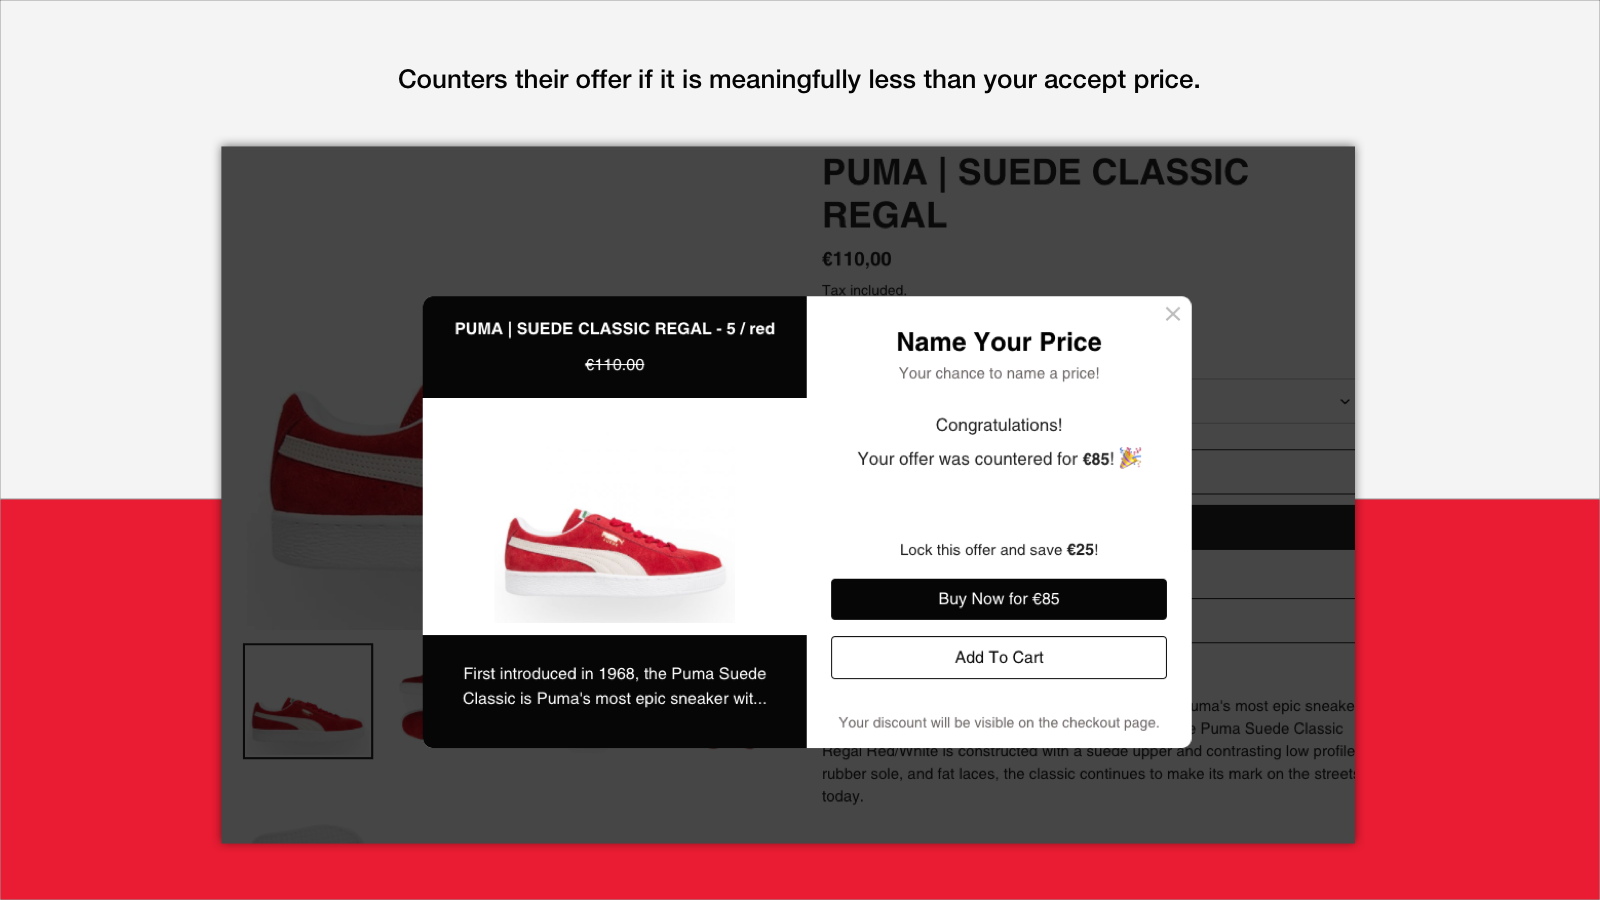 Name Your Price - Counter Offer